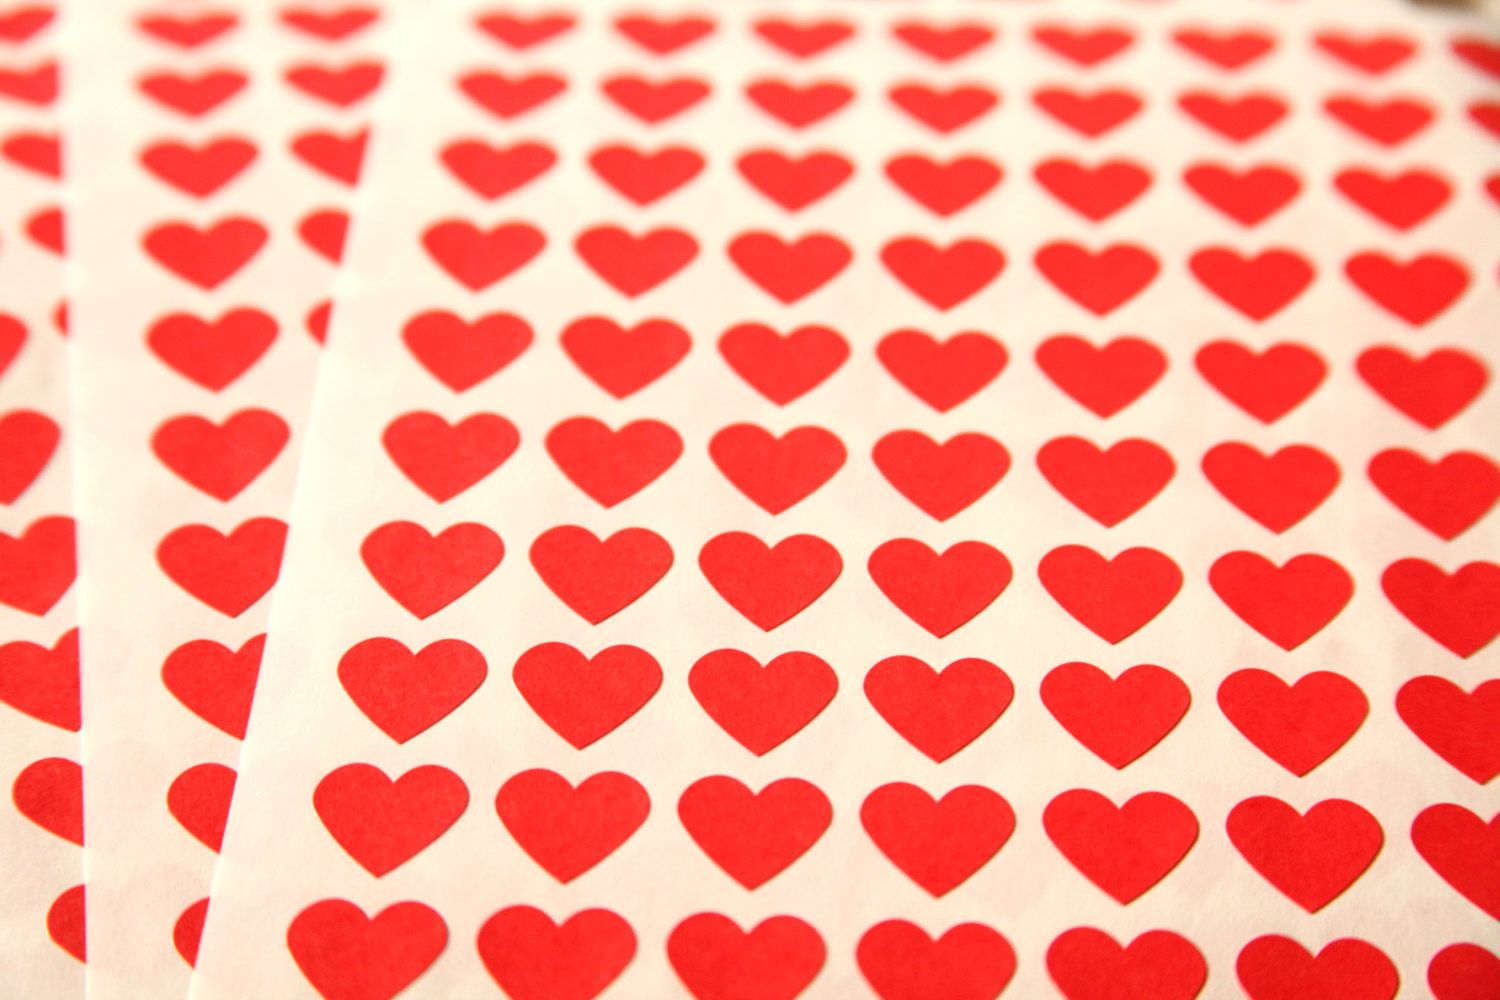 stick a heart there, stick a heart here...red heart stickers everywhere